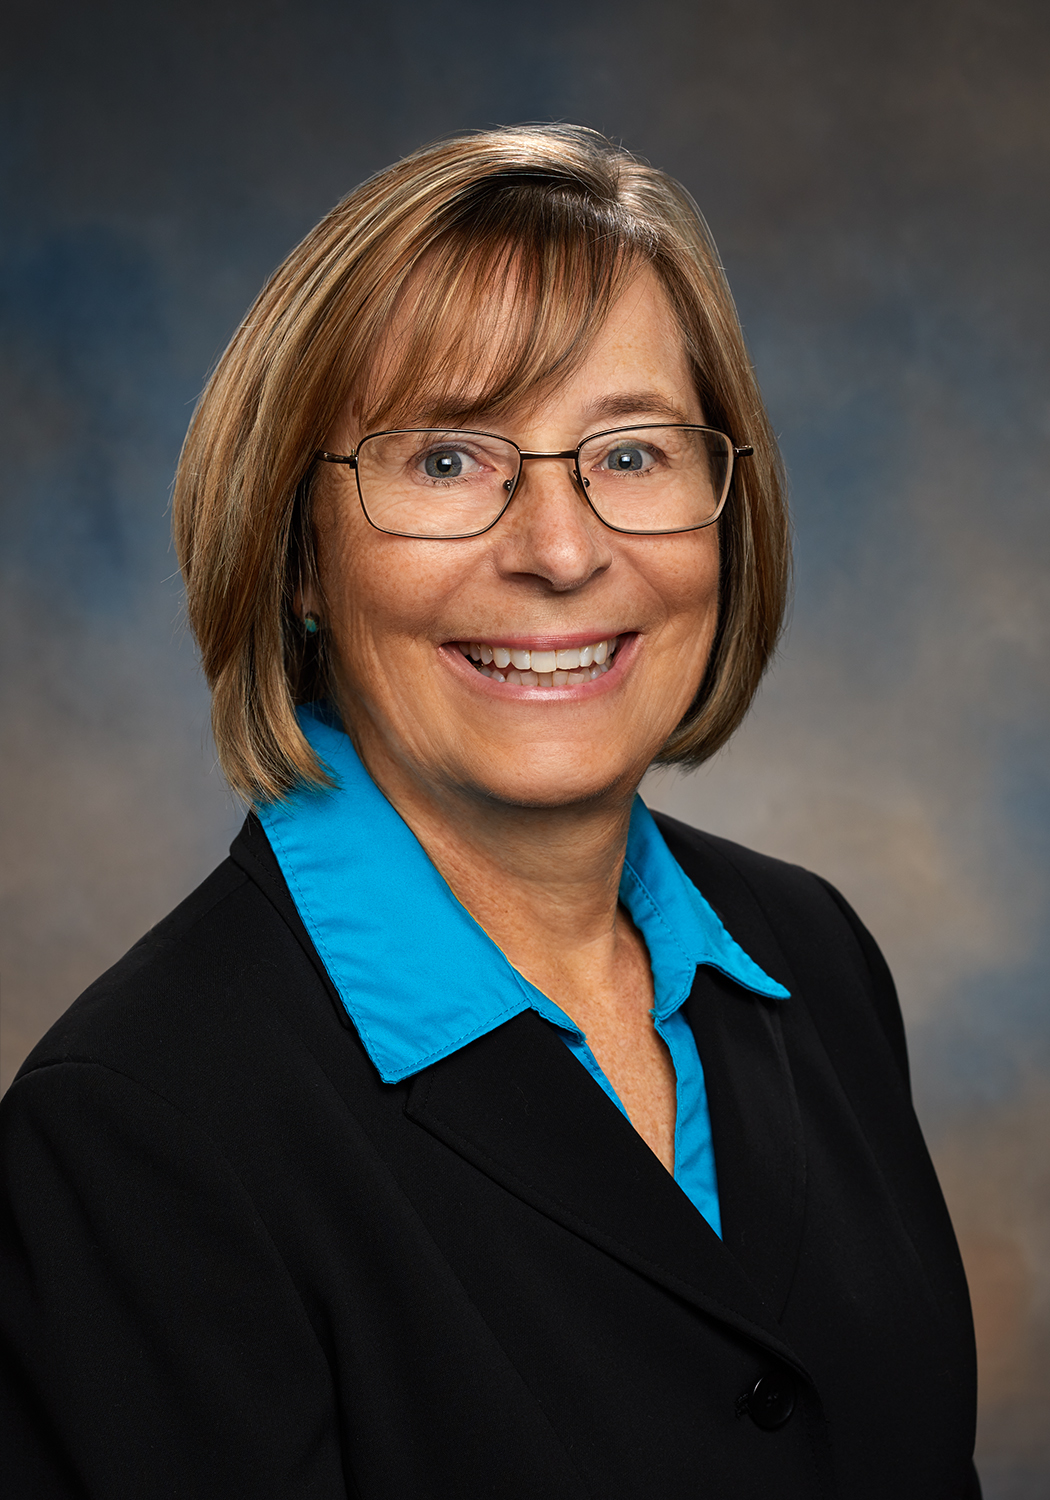 Nancy Gaffney, CPA